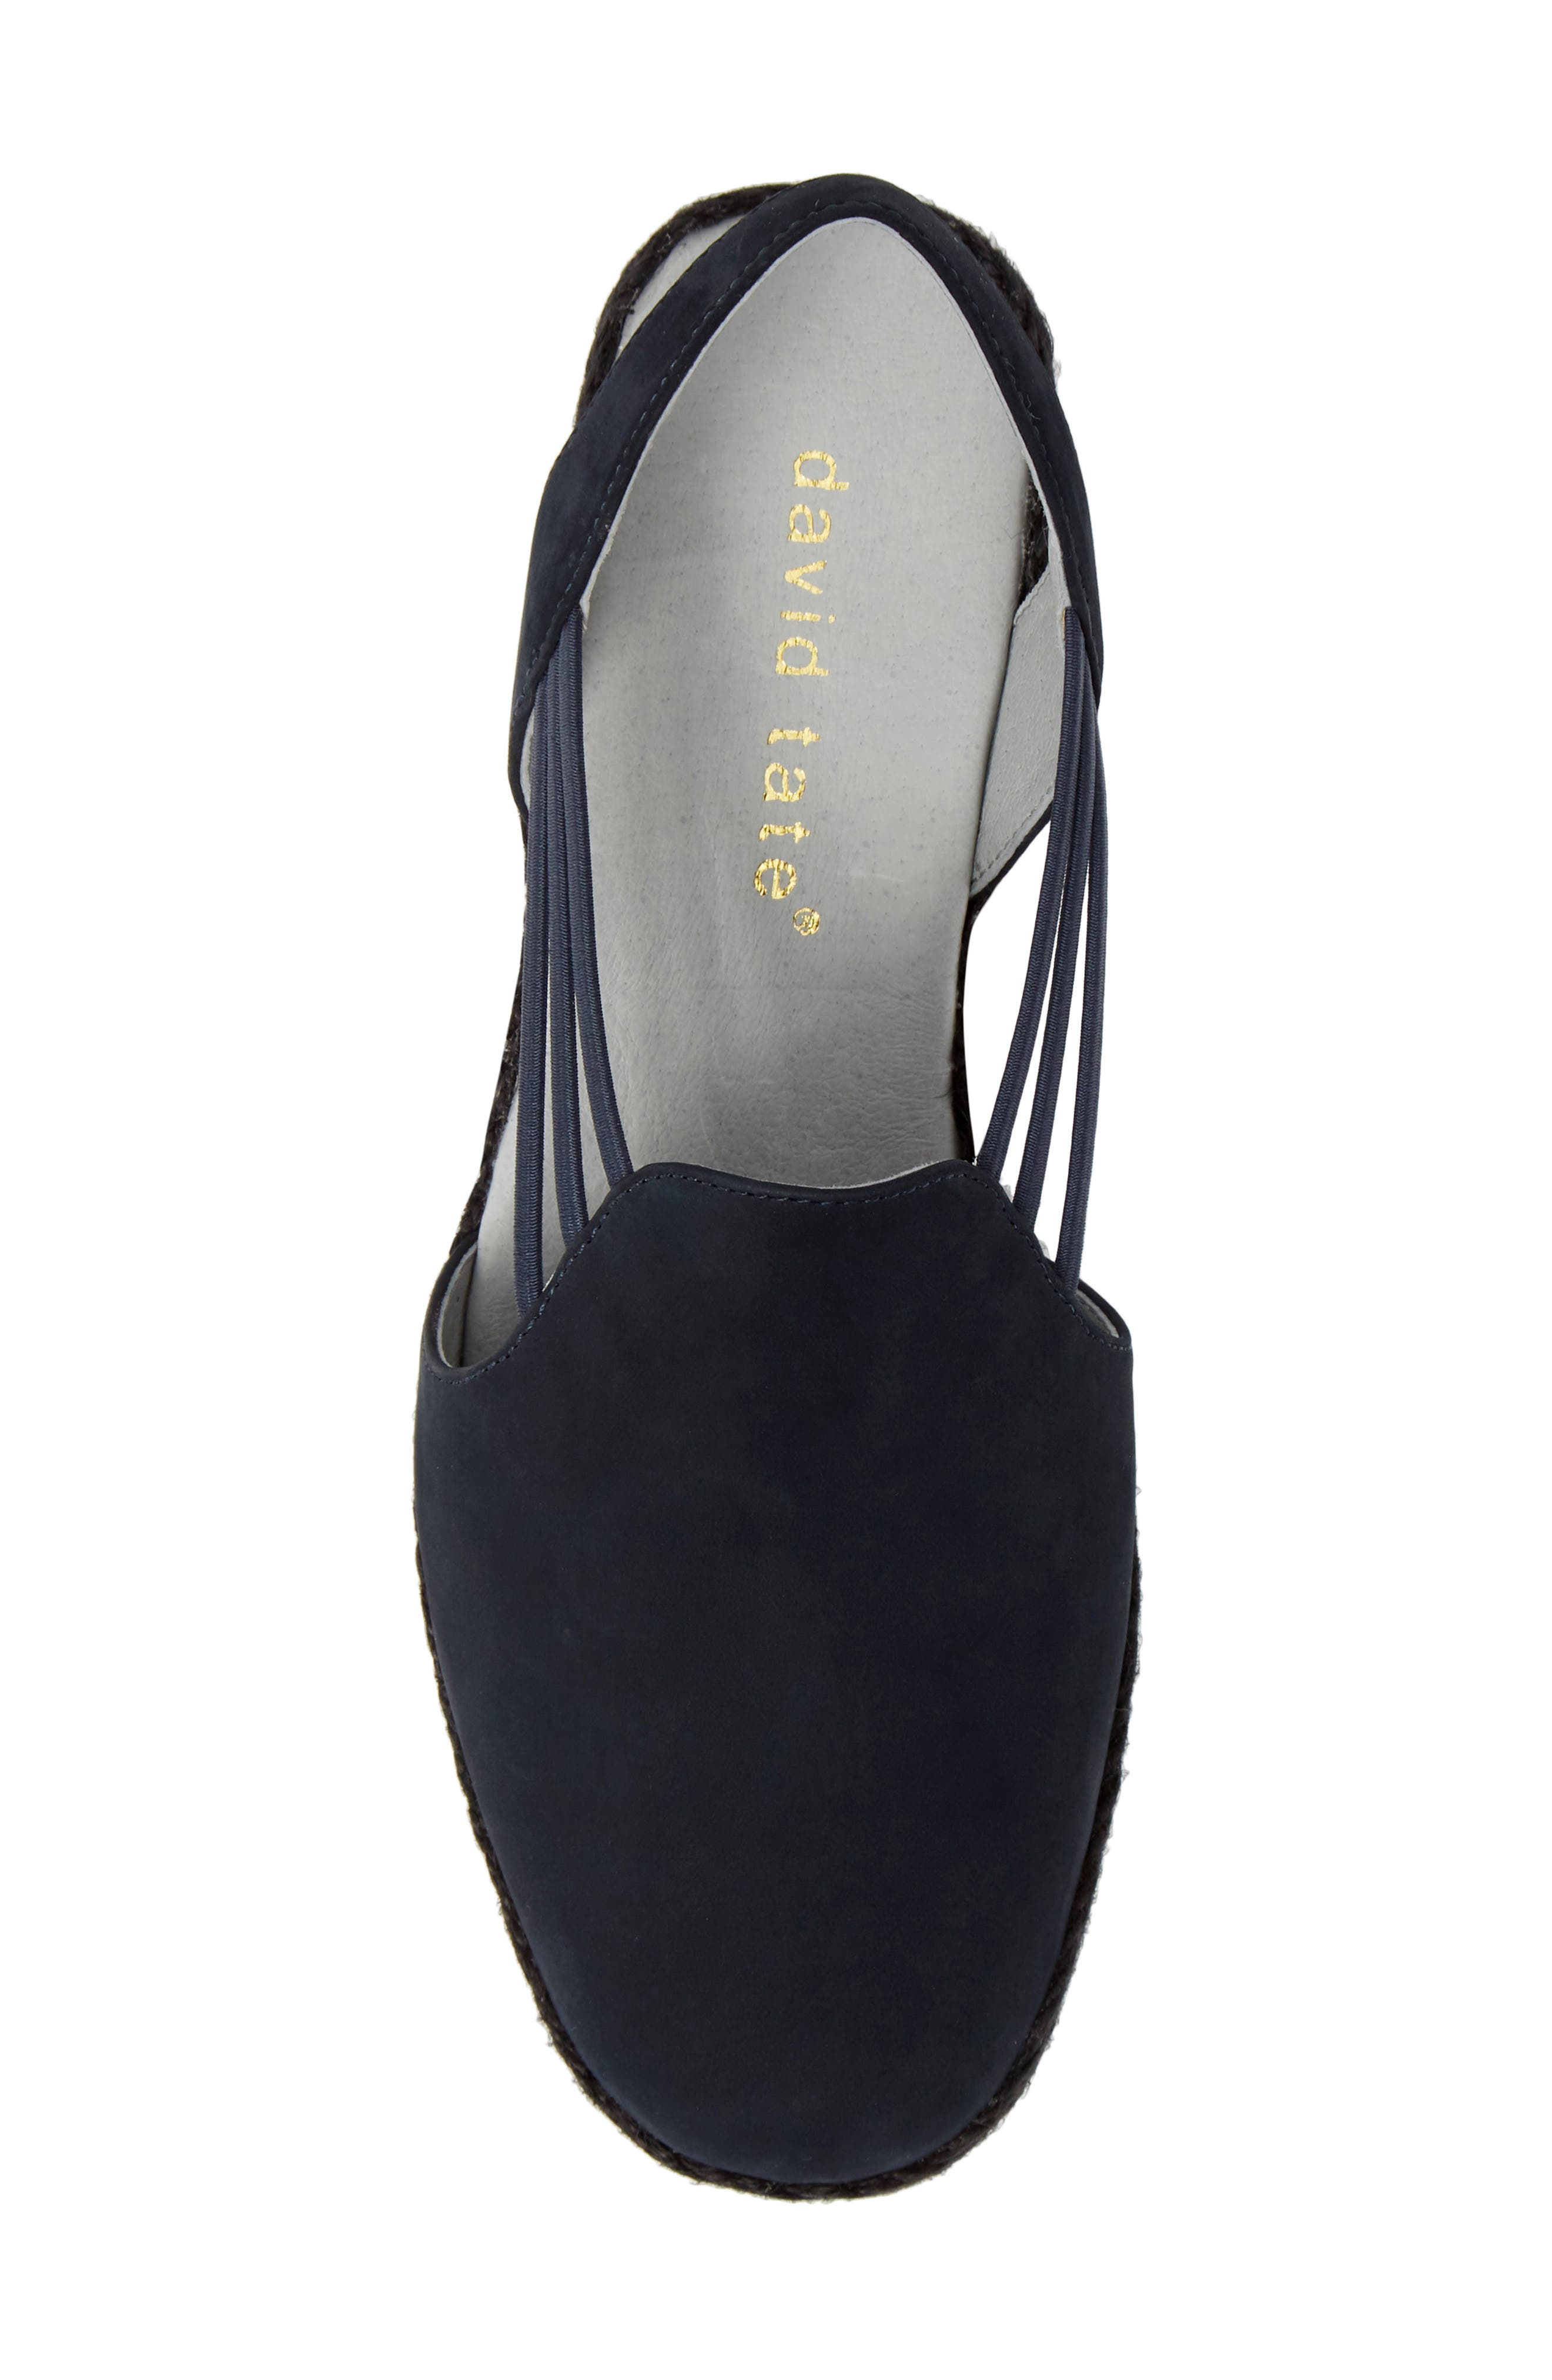 DAVID TATE,                             'Nelly' Slingback Wedge Sandal,                             Alternate thumbnail 5, color,                             NAVY NUBUCK LEATHER